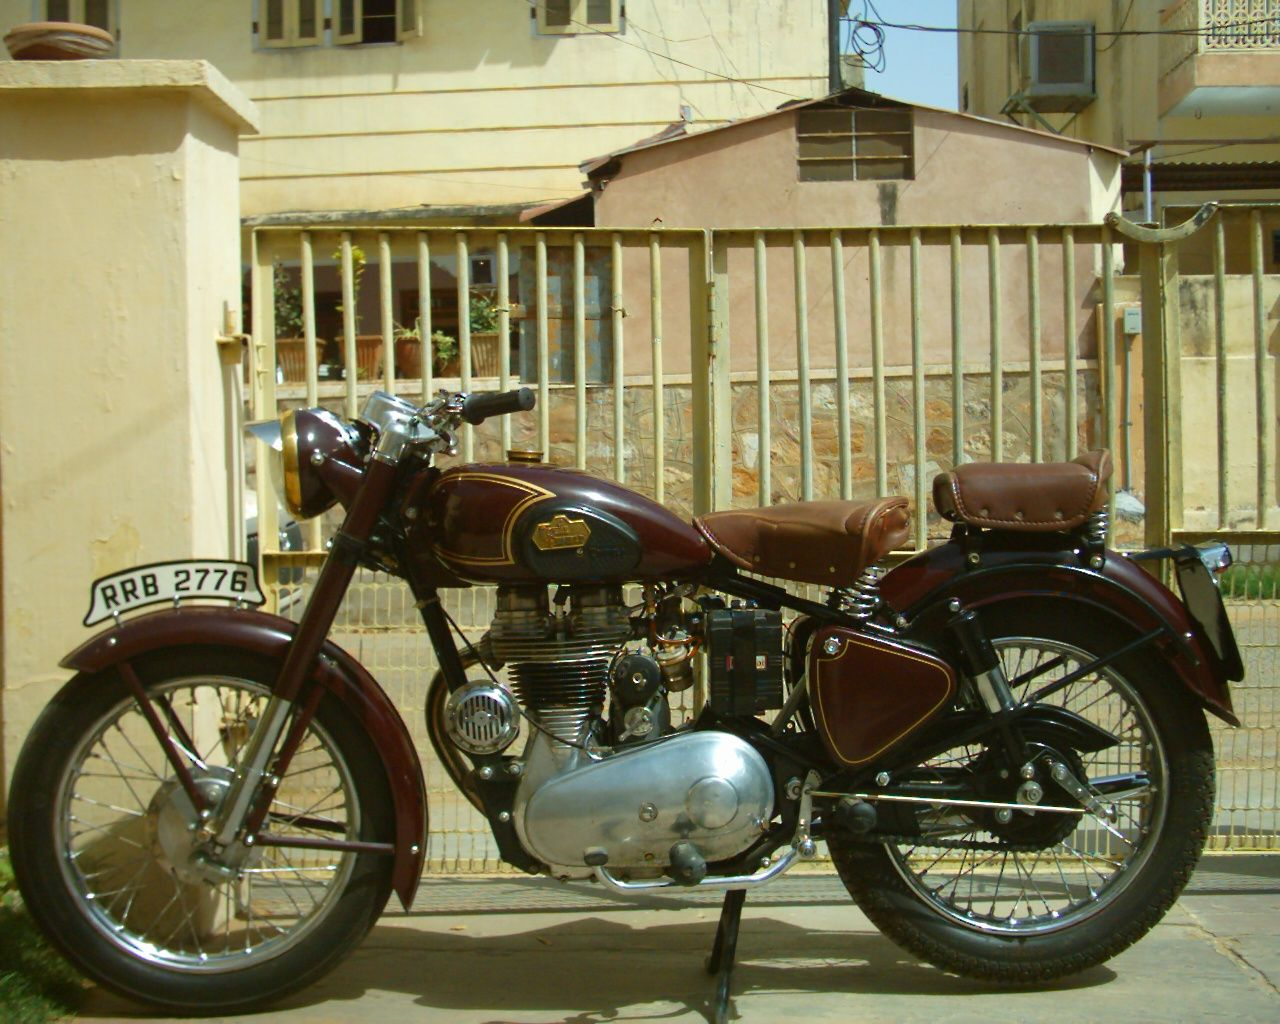 1947 Royal Enfield Model G Royal Enfield Resumed Production Of Civilian Machines During 1946 Announcing A 3 Mode Royal Enfield Classic Bikes Four Stroke Engine